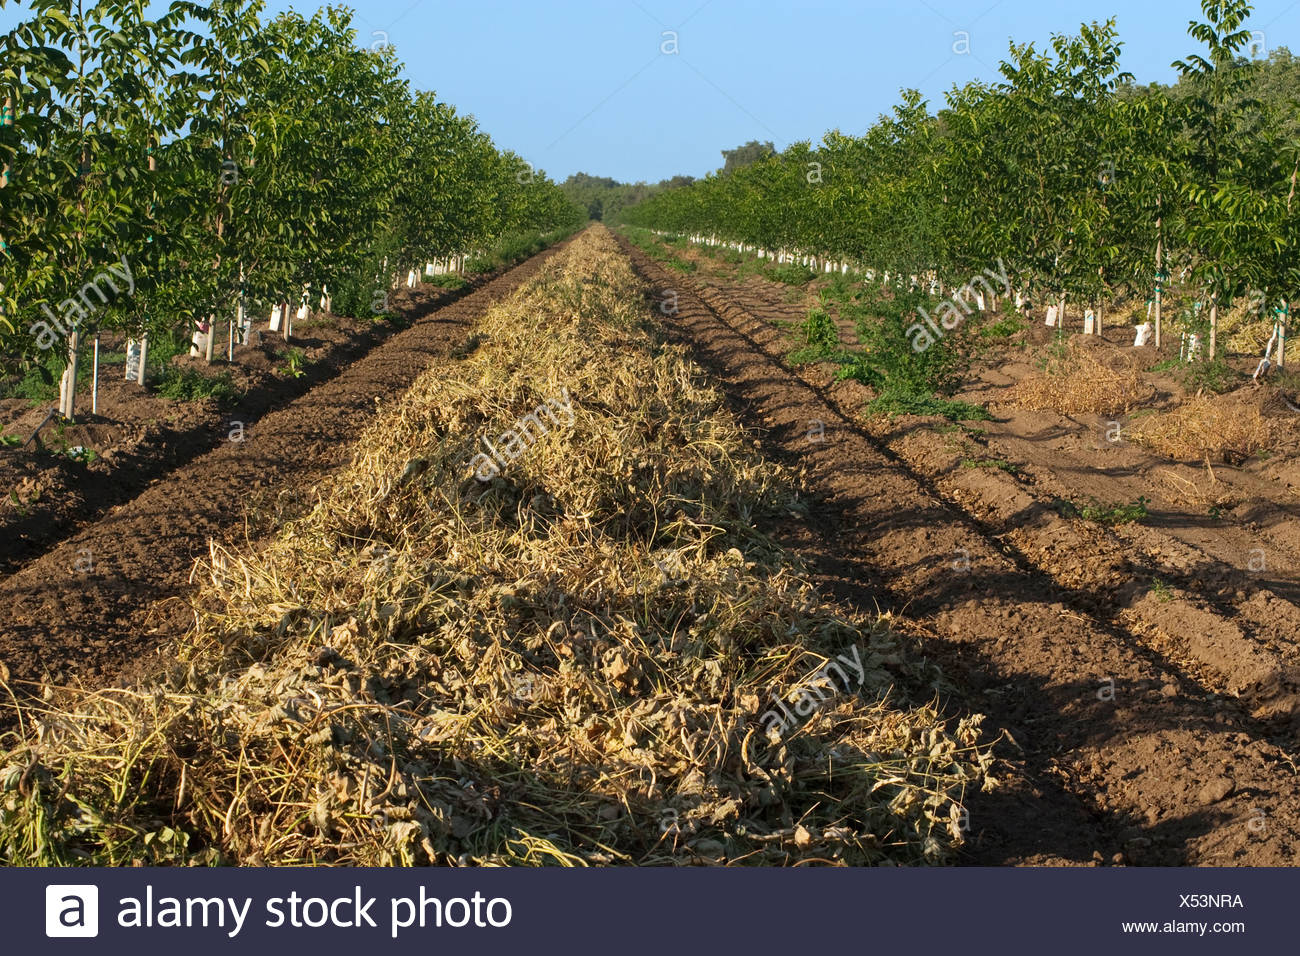 Kidney beans, cut and windrowed for drying before harvest, grown between rows of newly planted walnut trees / California, USA. - Stock Image